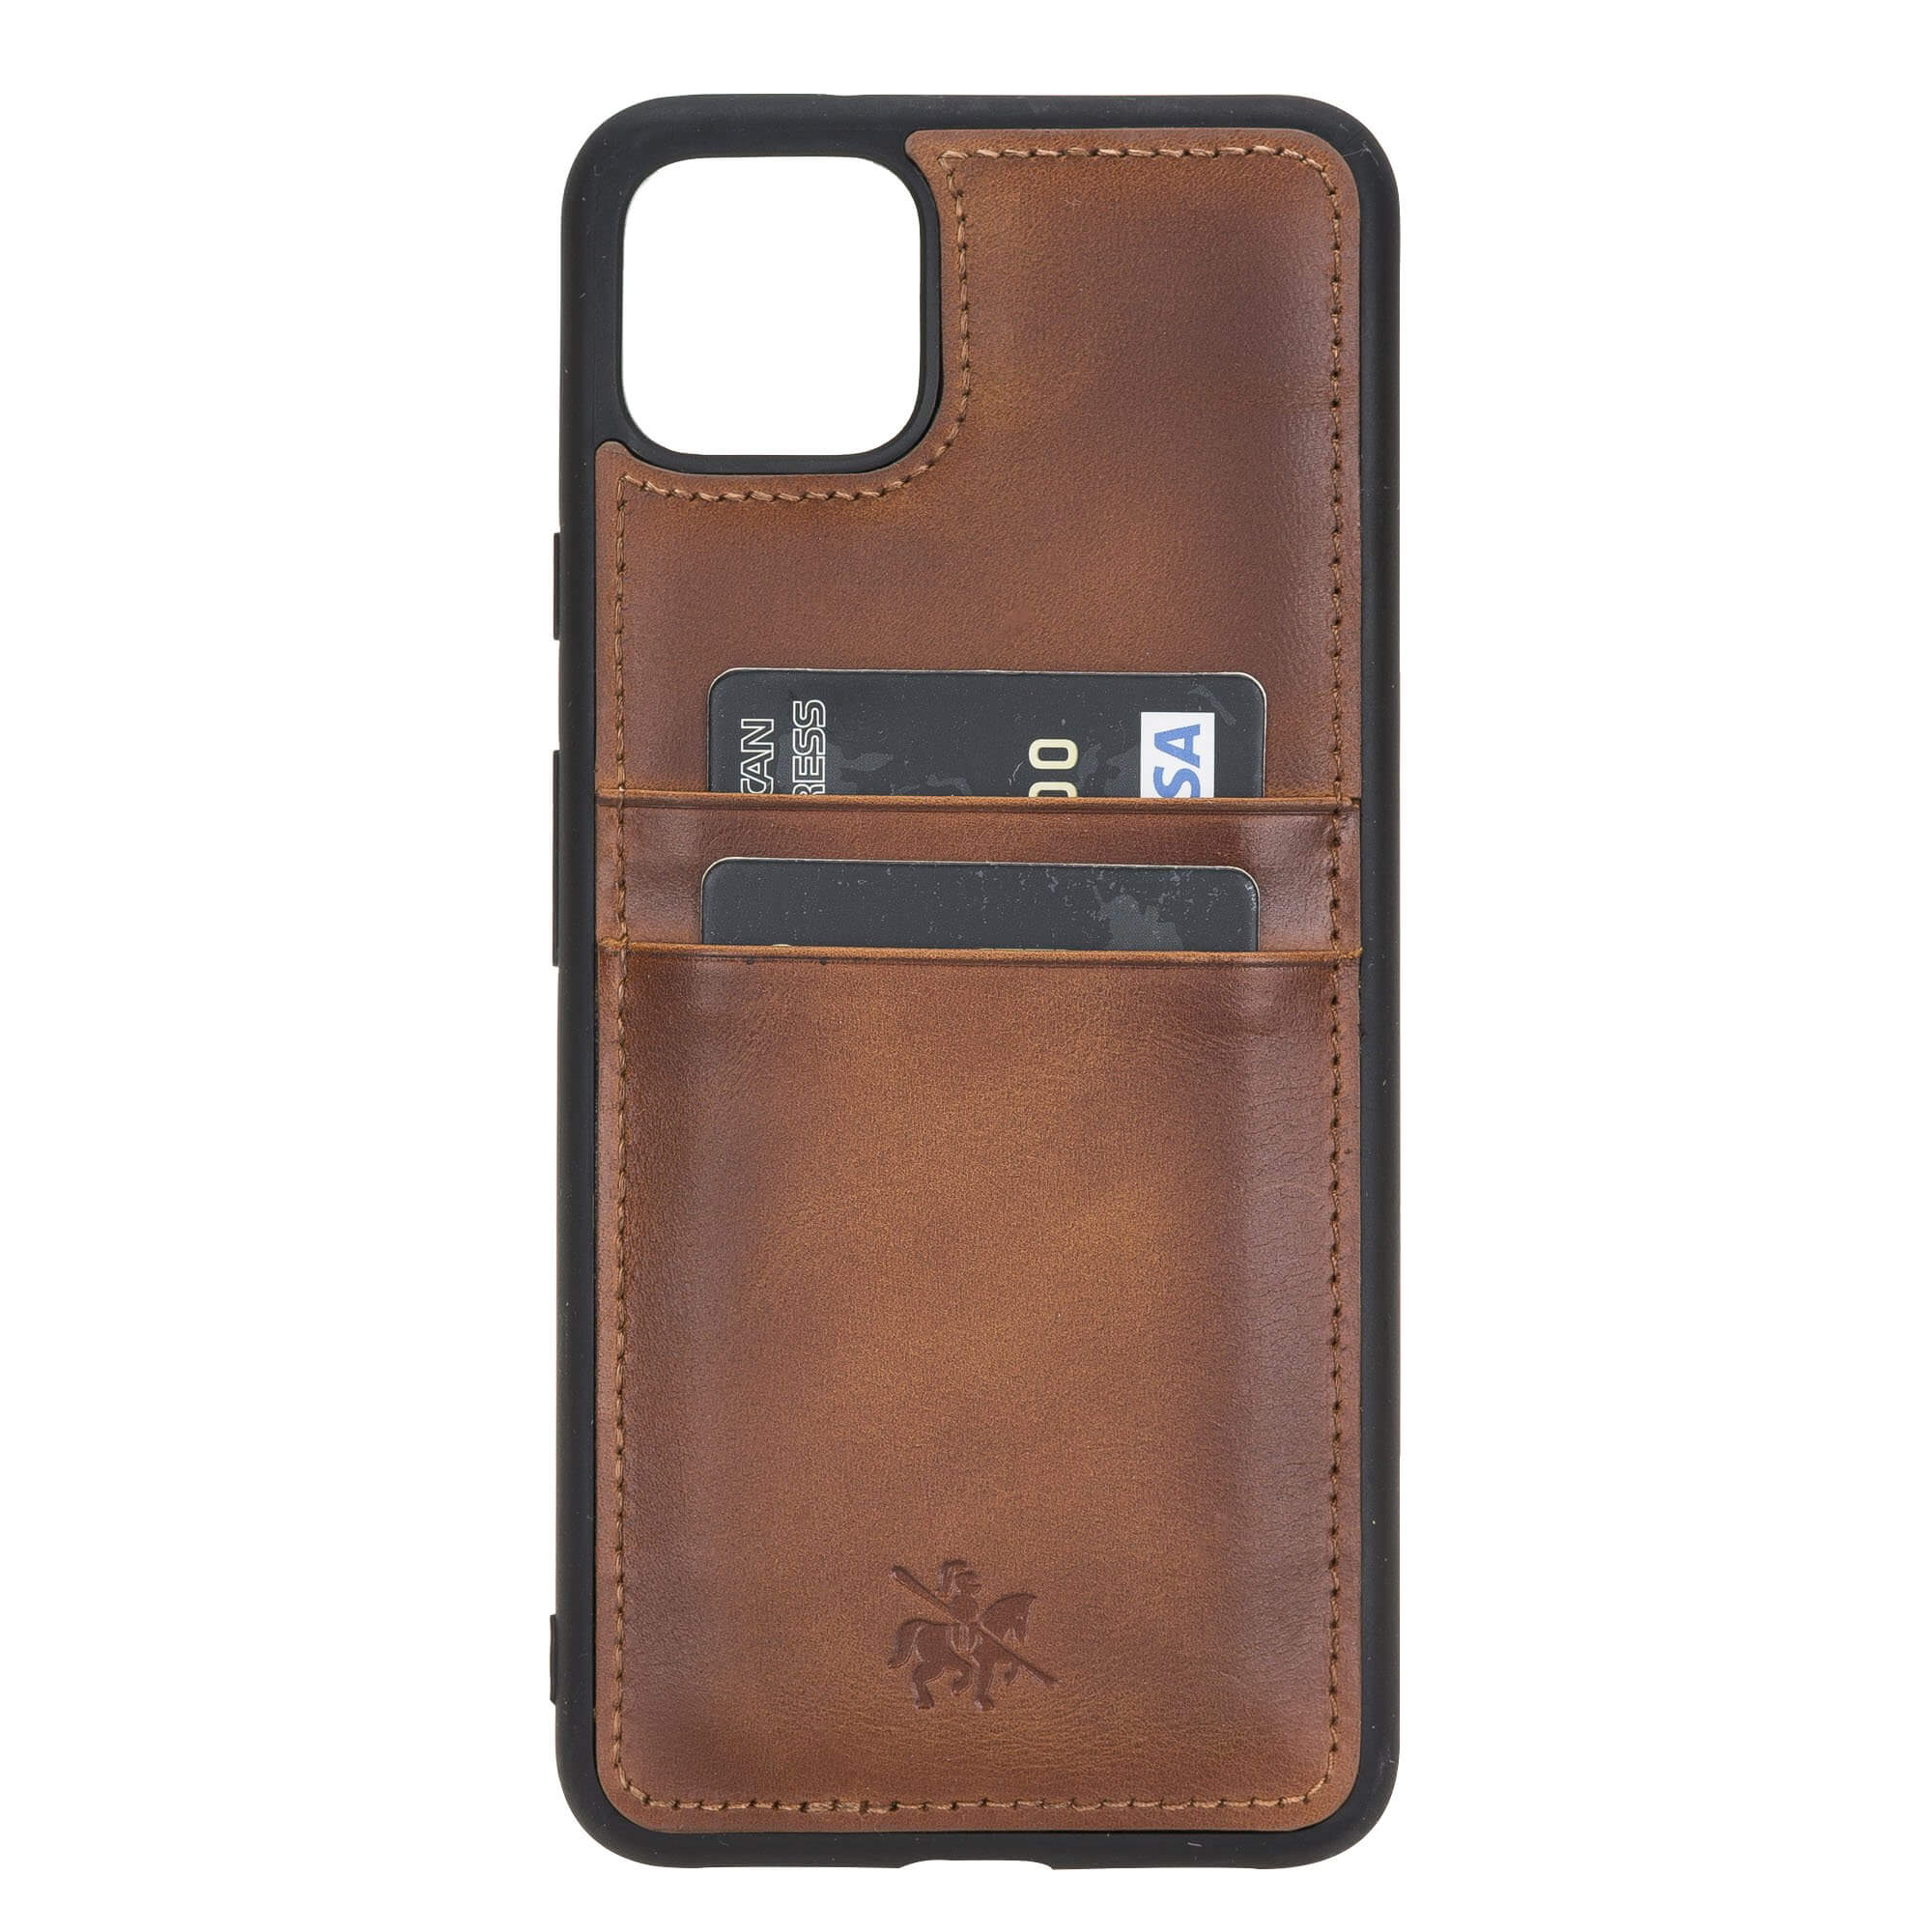 Capri Snap On Leather Wallet Case for Google Pixel 4 XL